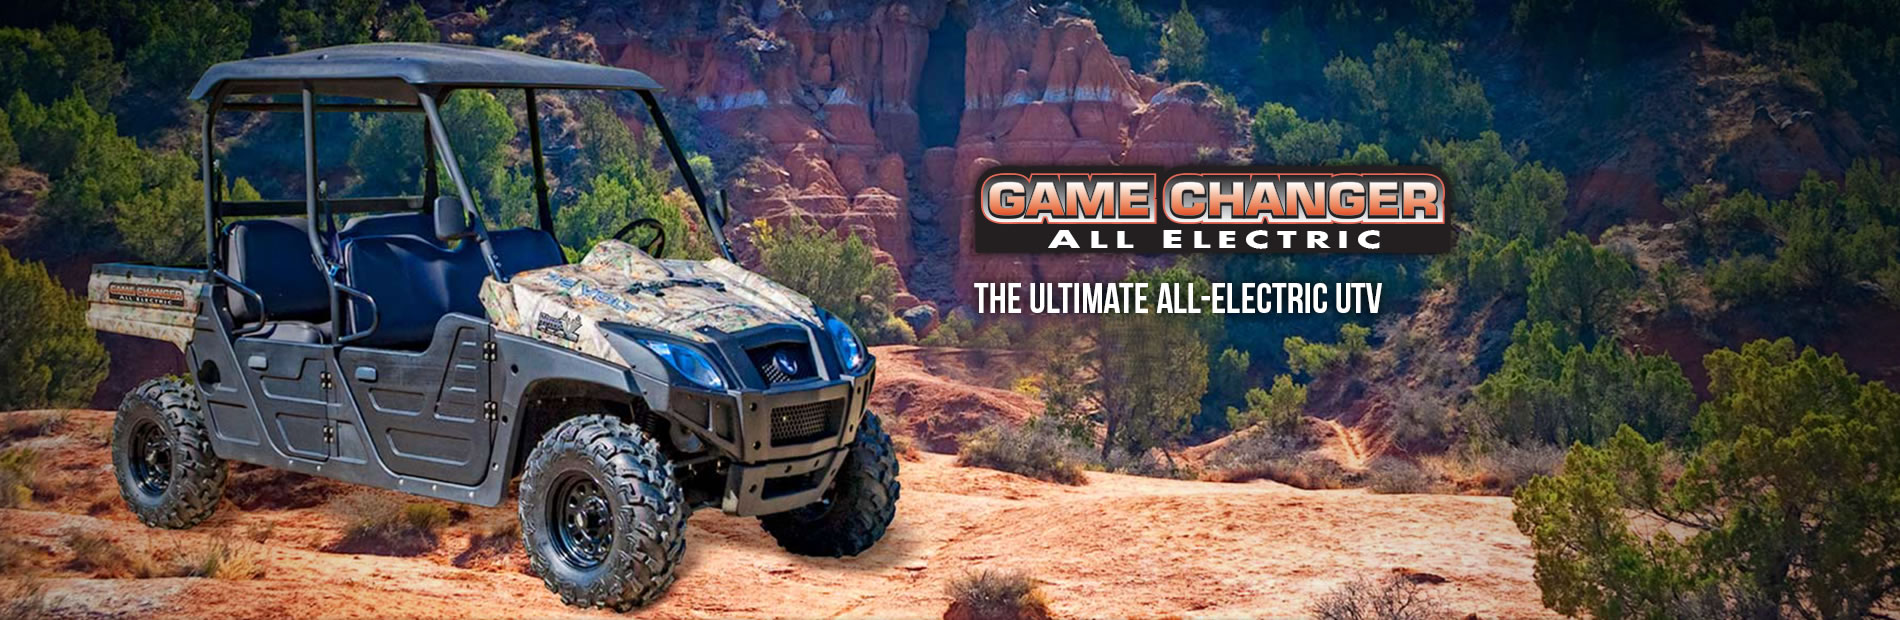 HuntVe Game Changer™ 4x4 Crew All Electric